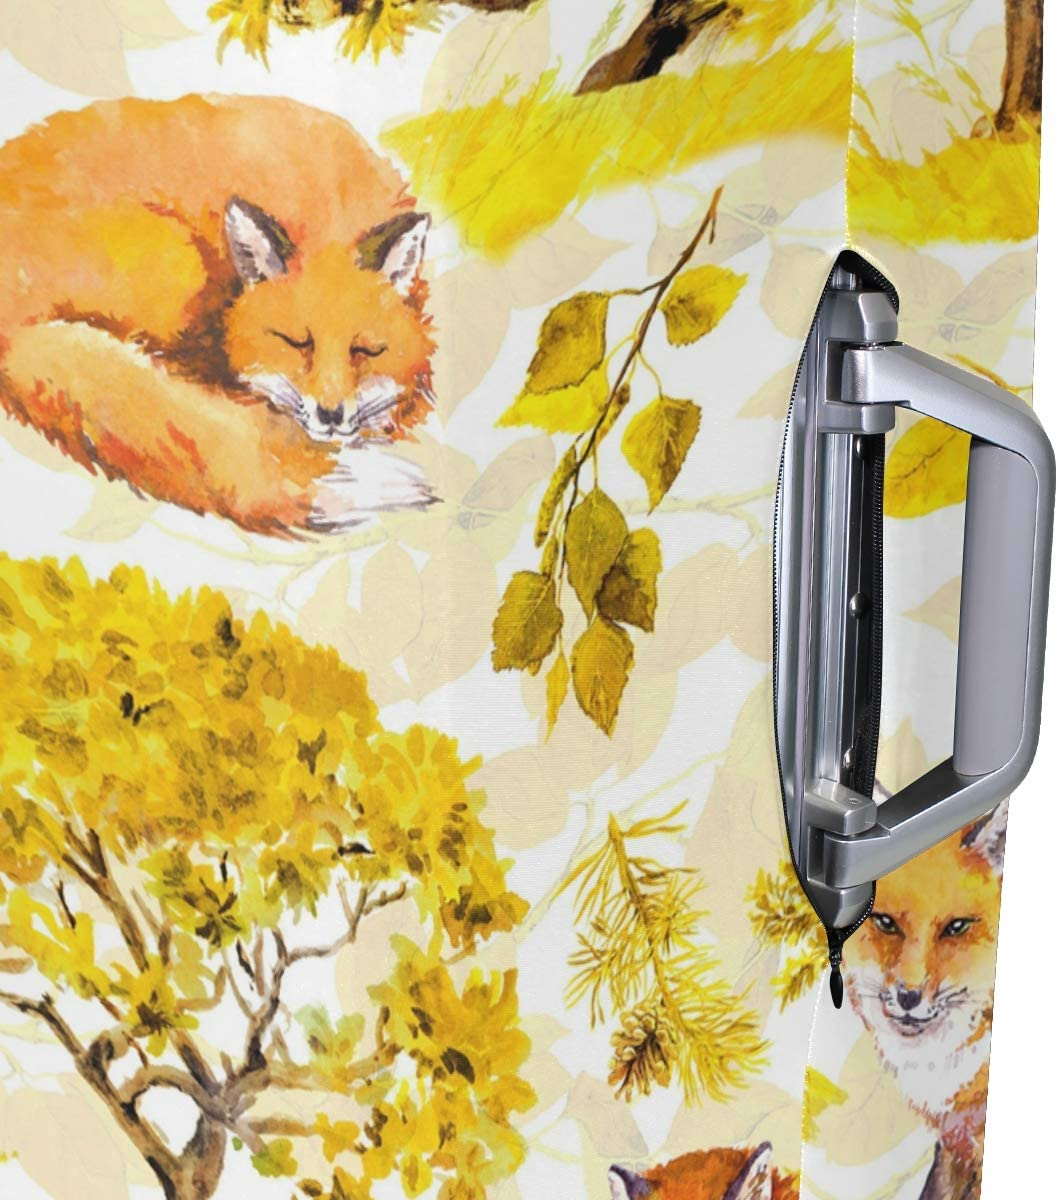 OREZI Luggage Protector,Autumn Yellow Trees With Fox Elastic Travel Luggage Suitcase Cover,Washable and Durable Anti-Scratch Case Protective Cover for 18-32 Inches